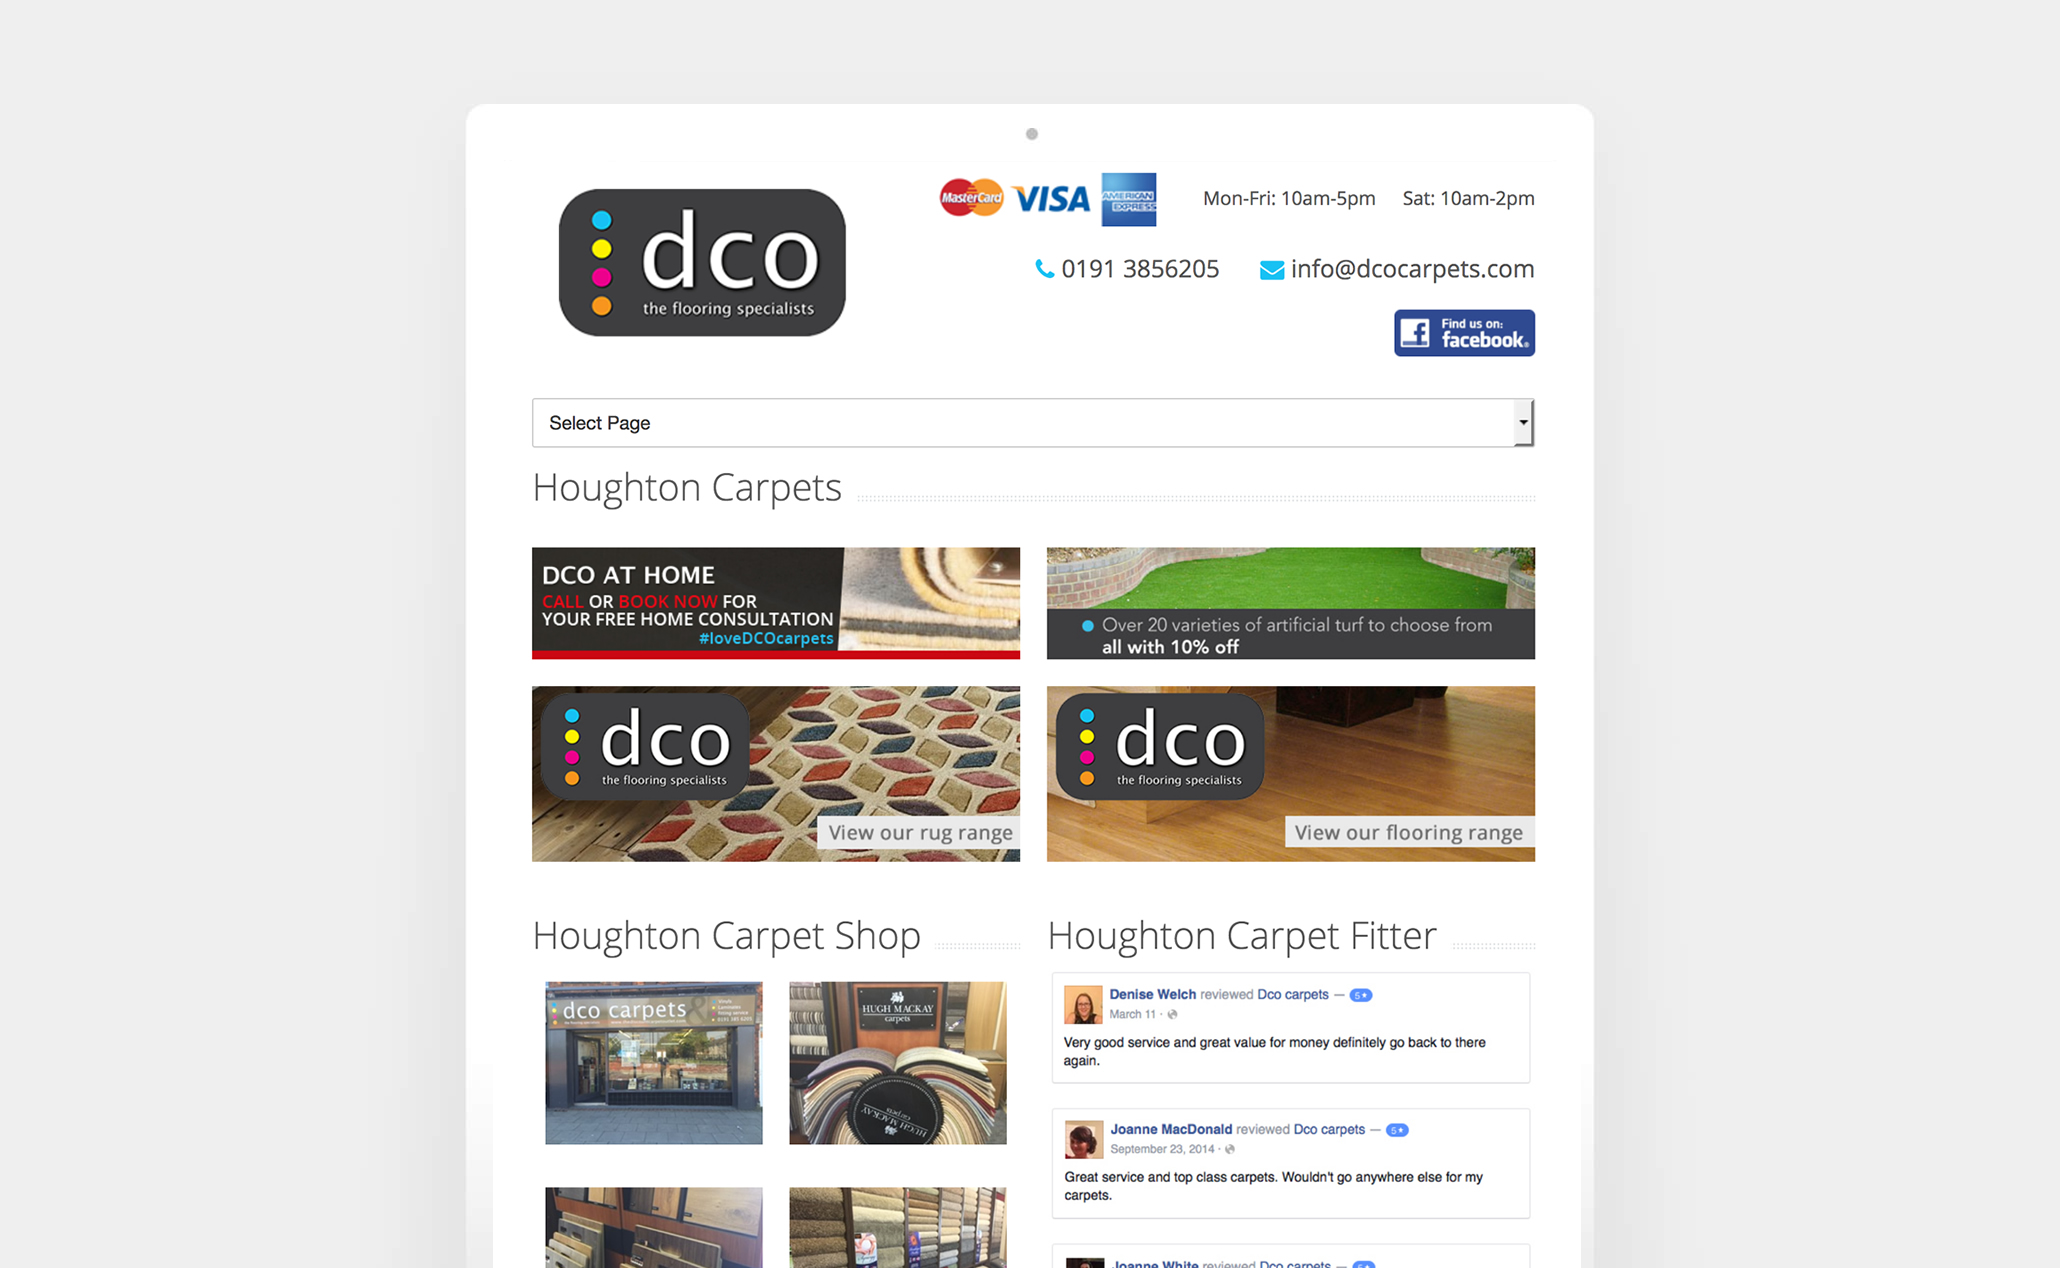 <p>Local carpet and flooring specialists DCO Carpets already had a website but required work on making their site responsive and attracting more customers. We were able to advise and implement changes which not only increased their Google visibility with some on page Search Engine Optimisation but allowed customers to link from facebook to their website seamlessly using a mobile phone.</p> <p>Over the years we've helped when required and now host and maintain the website as well</p>